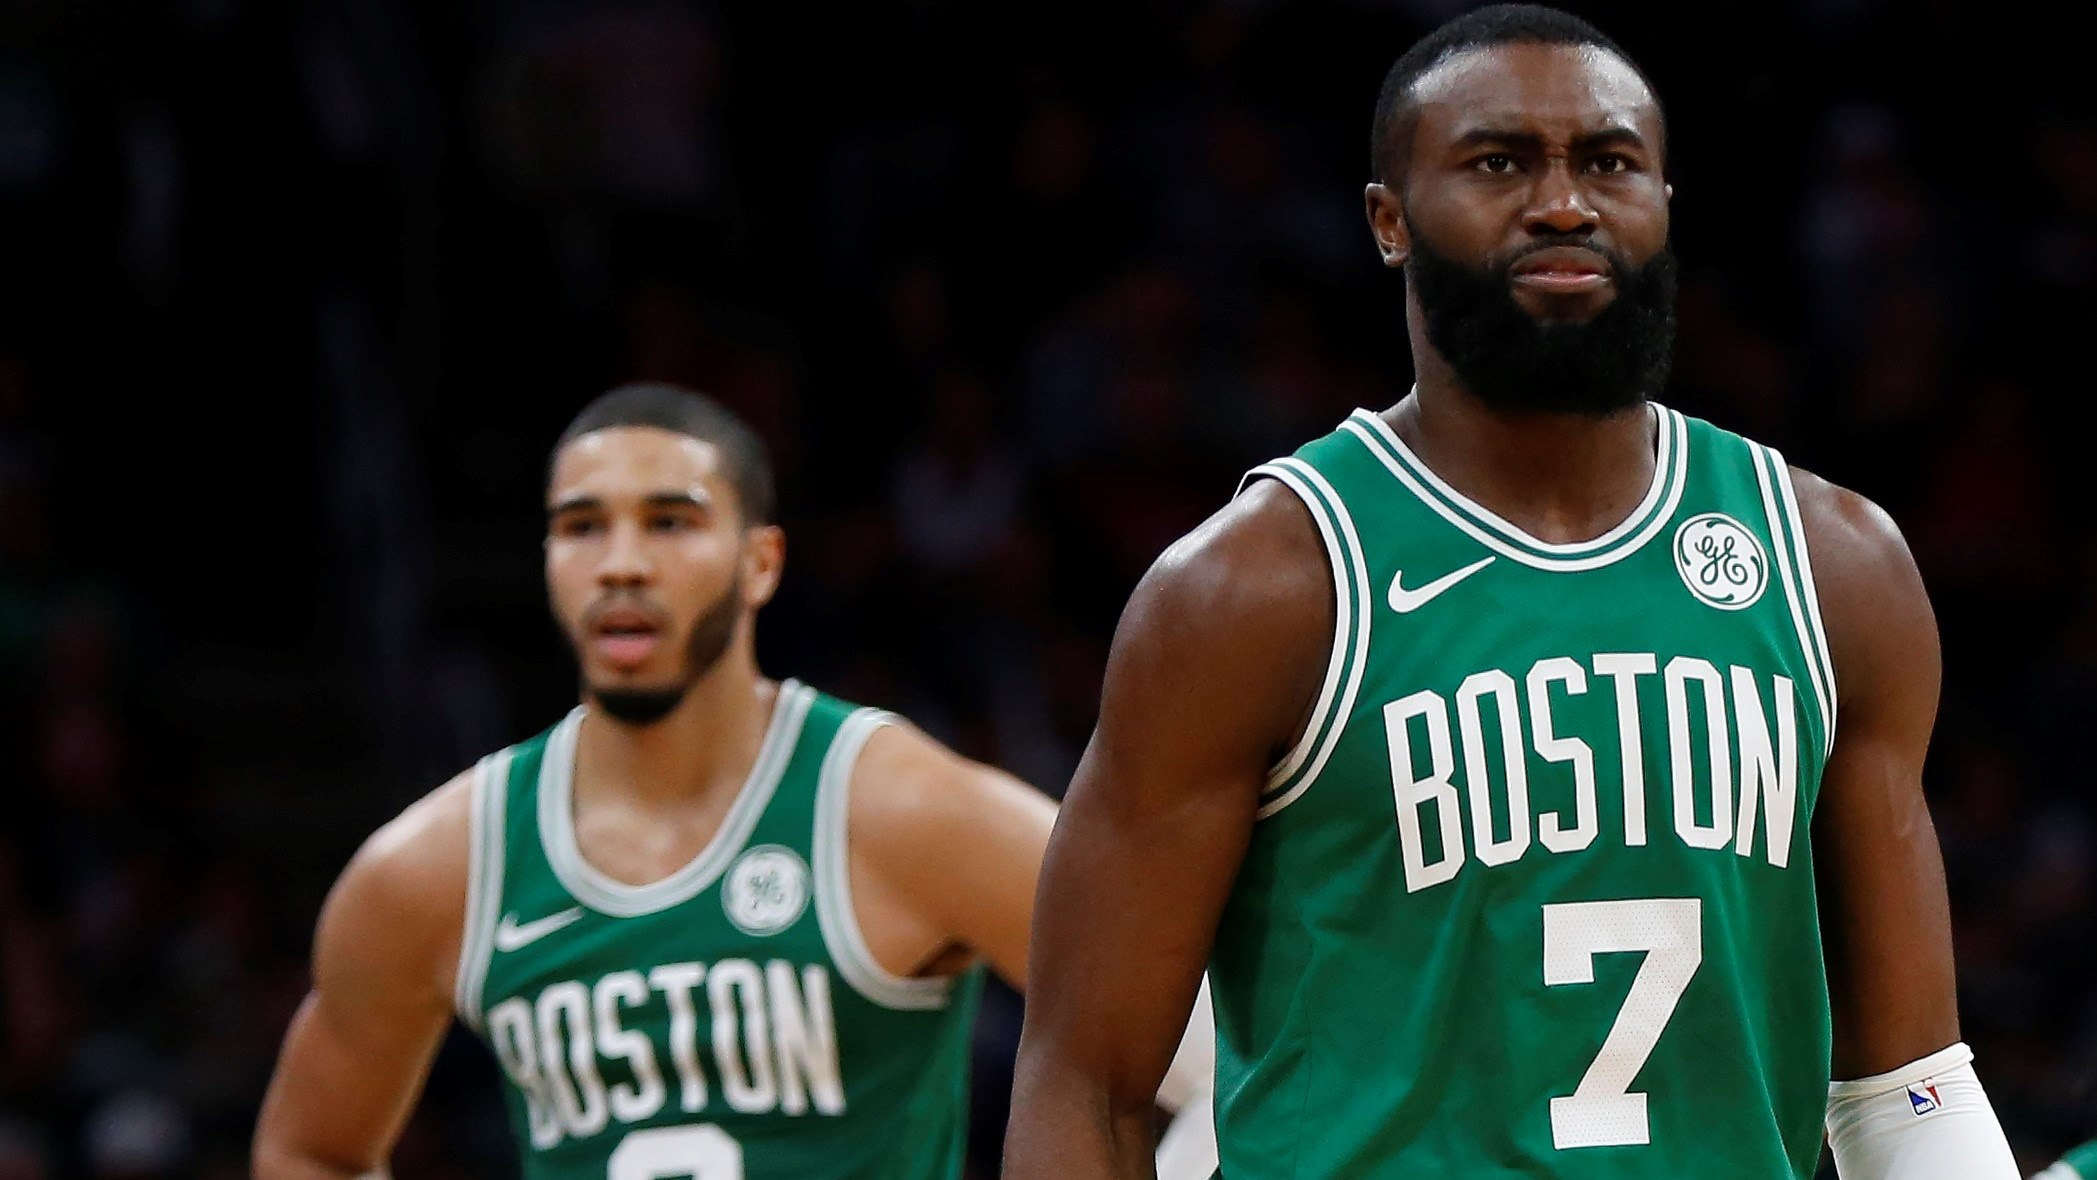 The NBA Might Be Adding Teams, What Players Do You Want The Celtics To Protect From An Expansion Draft?